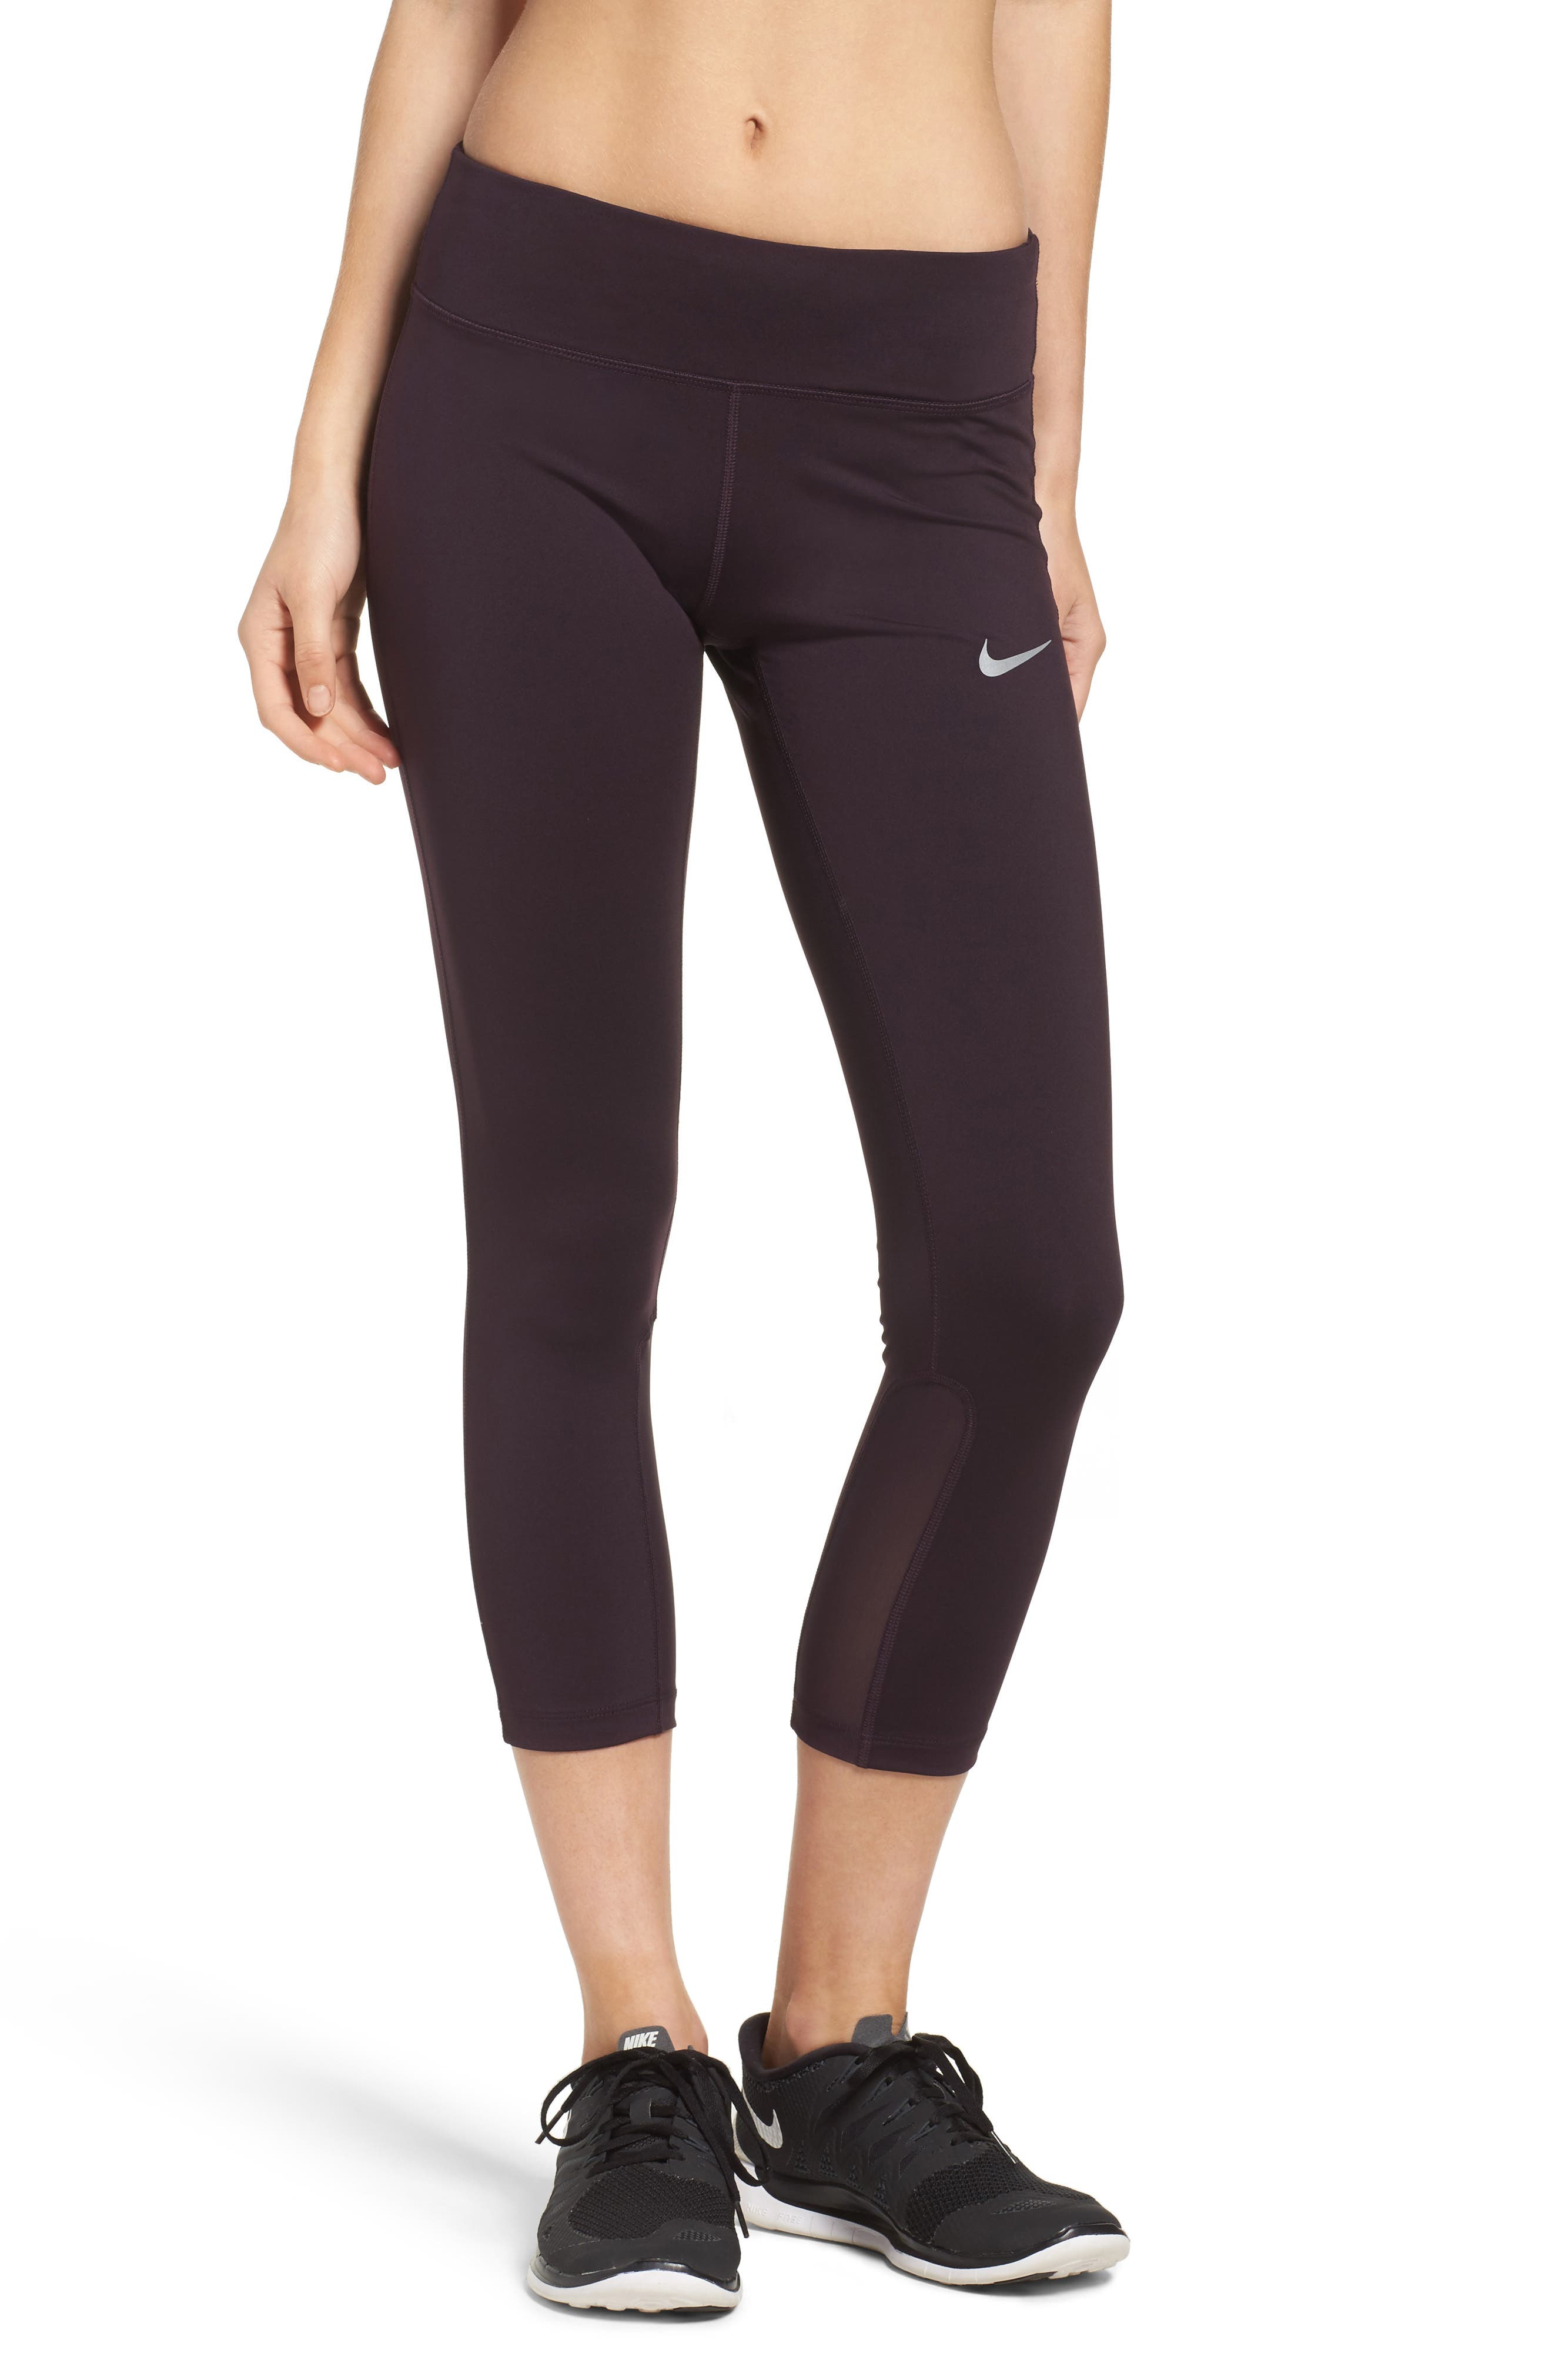 Nike Power Epic Run Crop Tights